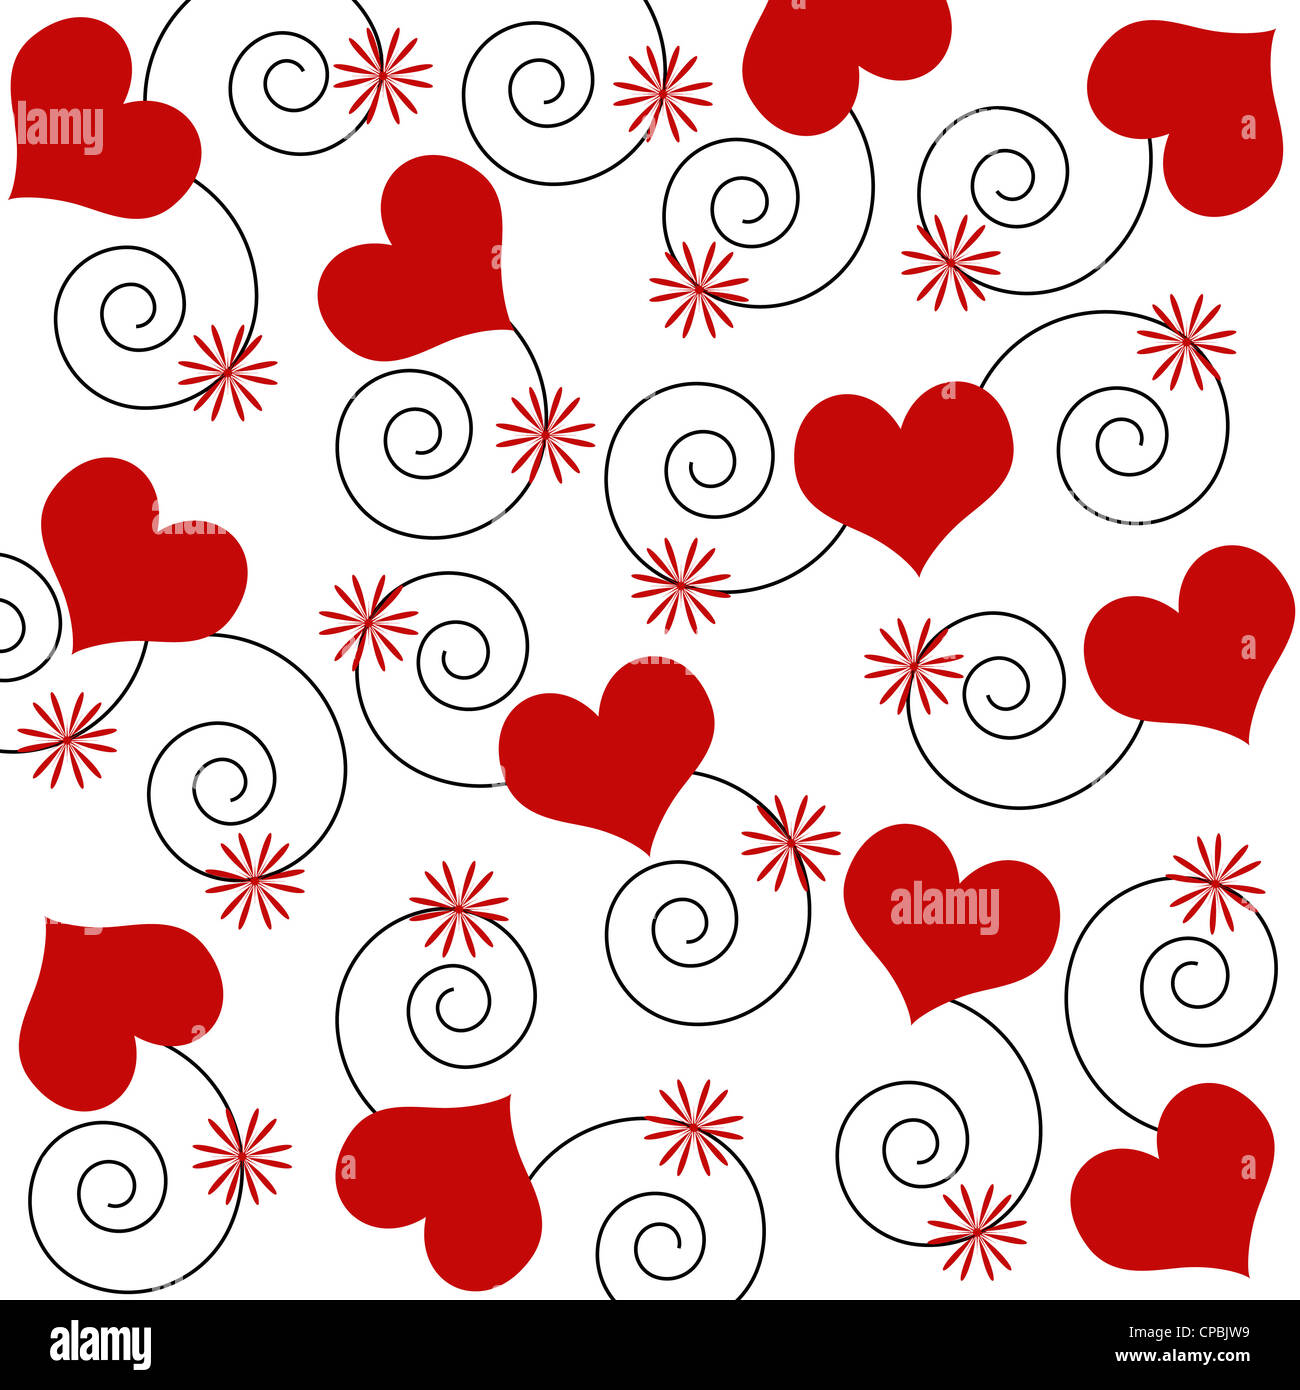 Red hearts and swirls pattern on white Stock Photo